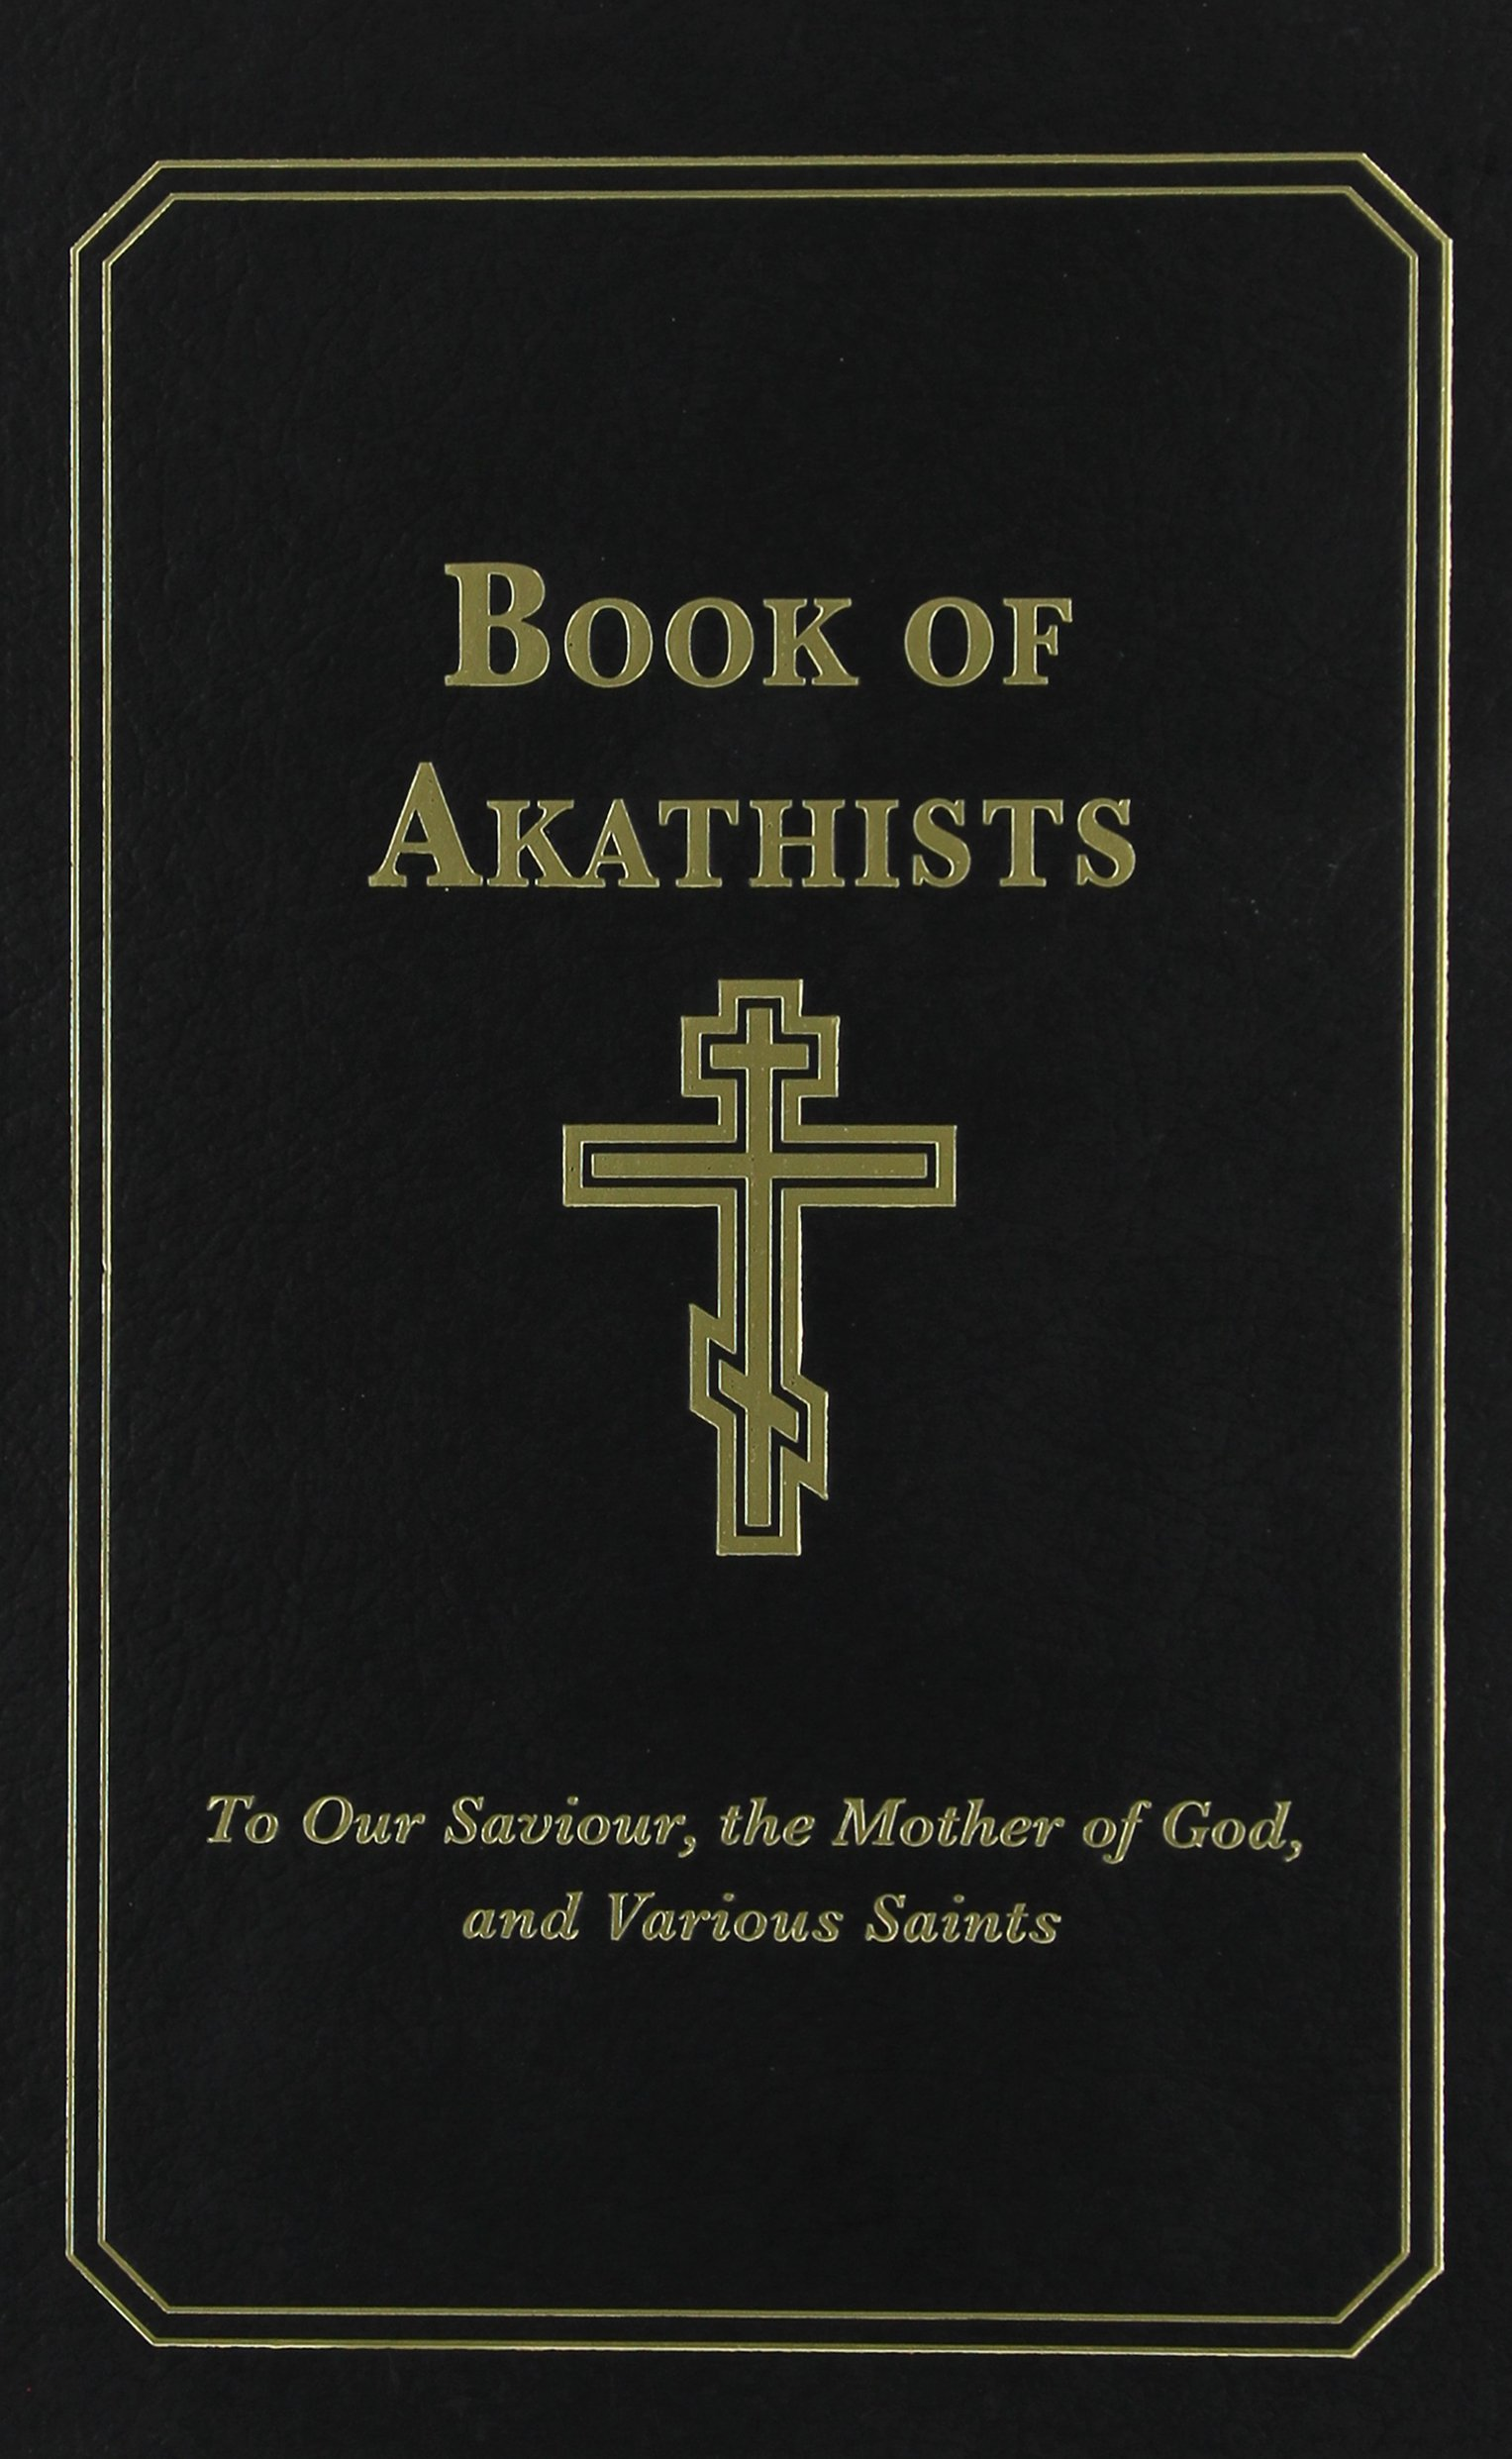 The Book of Akathists: To Our Saviour, the Mother of God and Various Saints